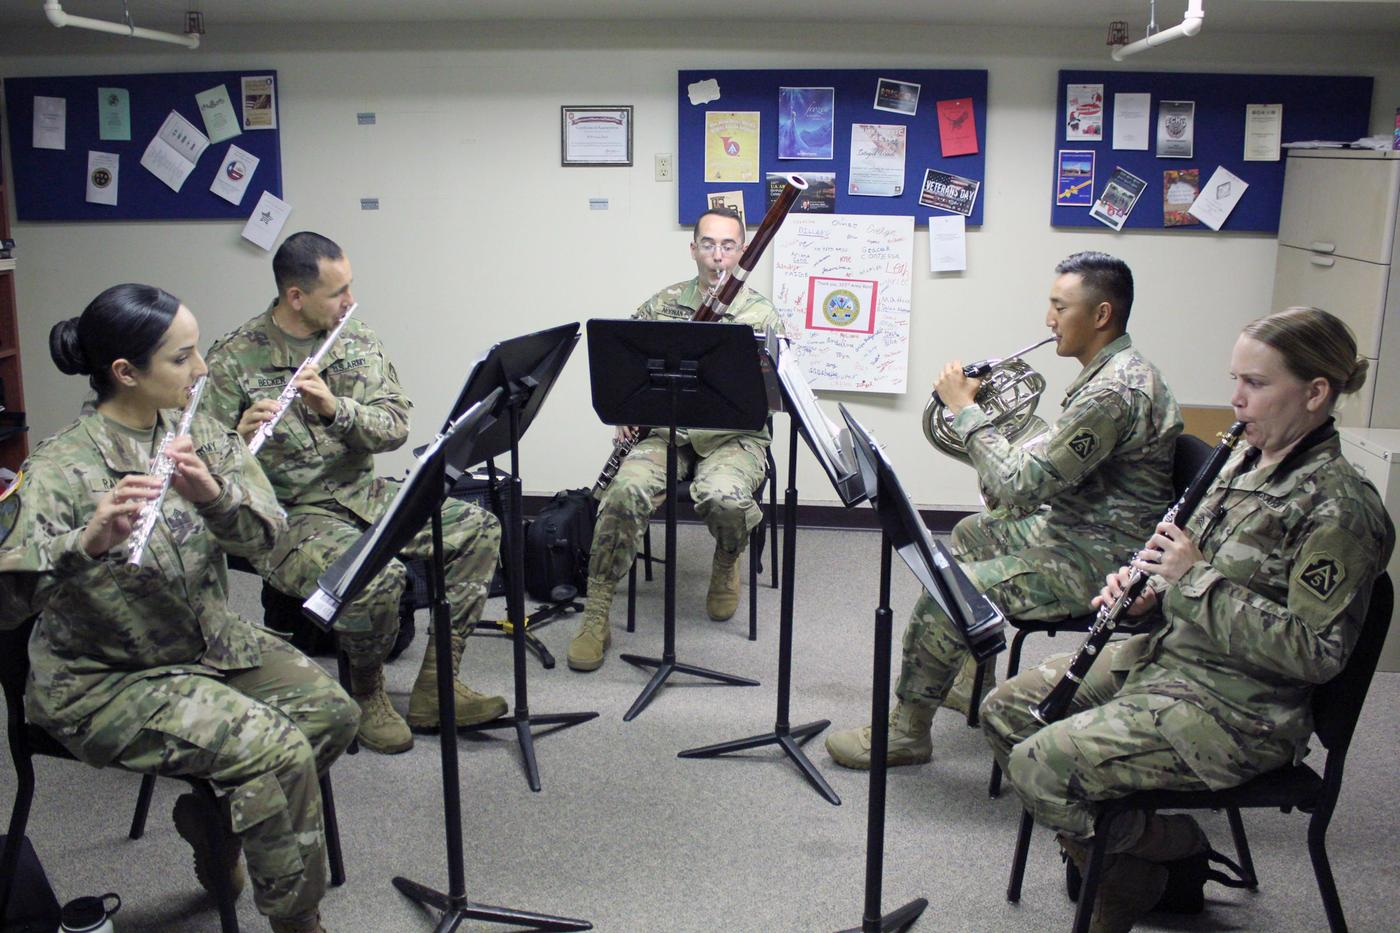 A Swan Song For Some Military Bands Budget Cuts Stop The